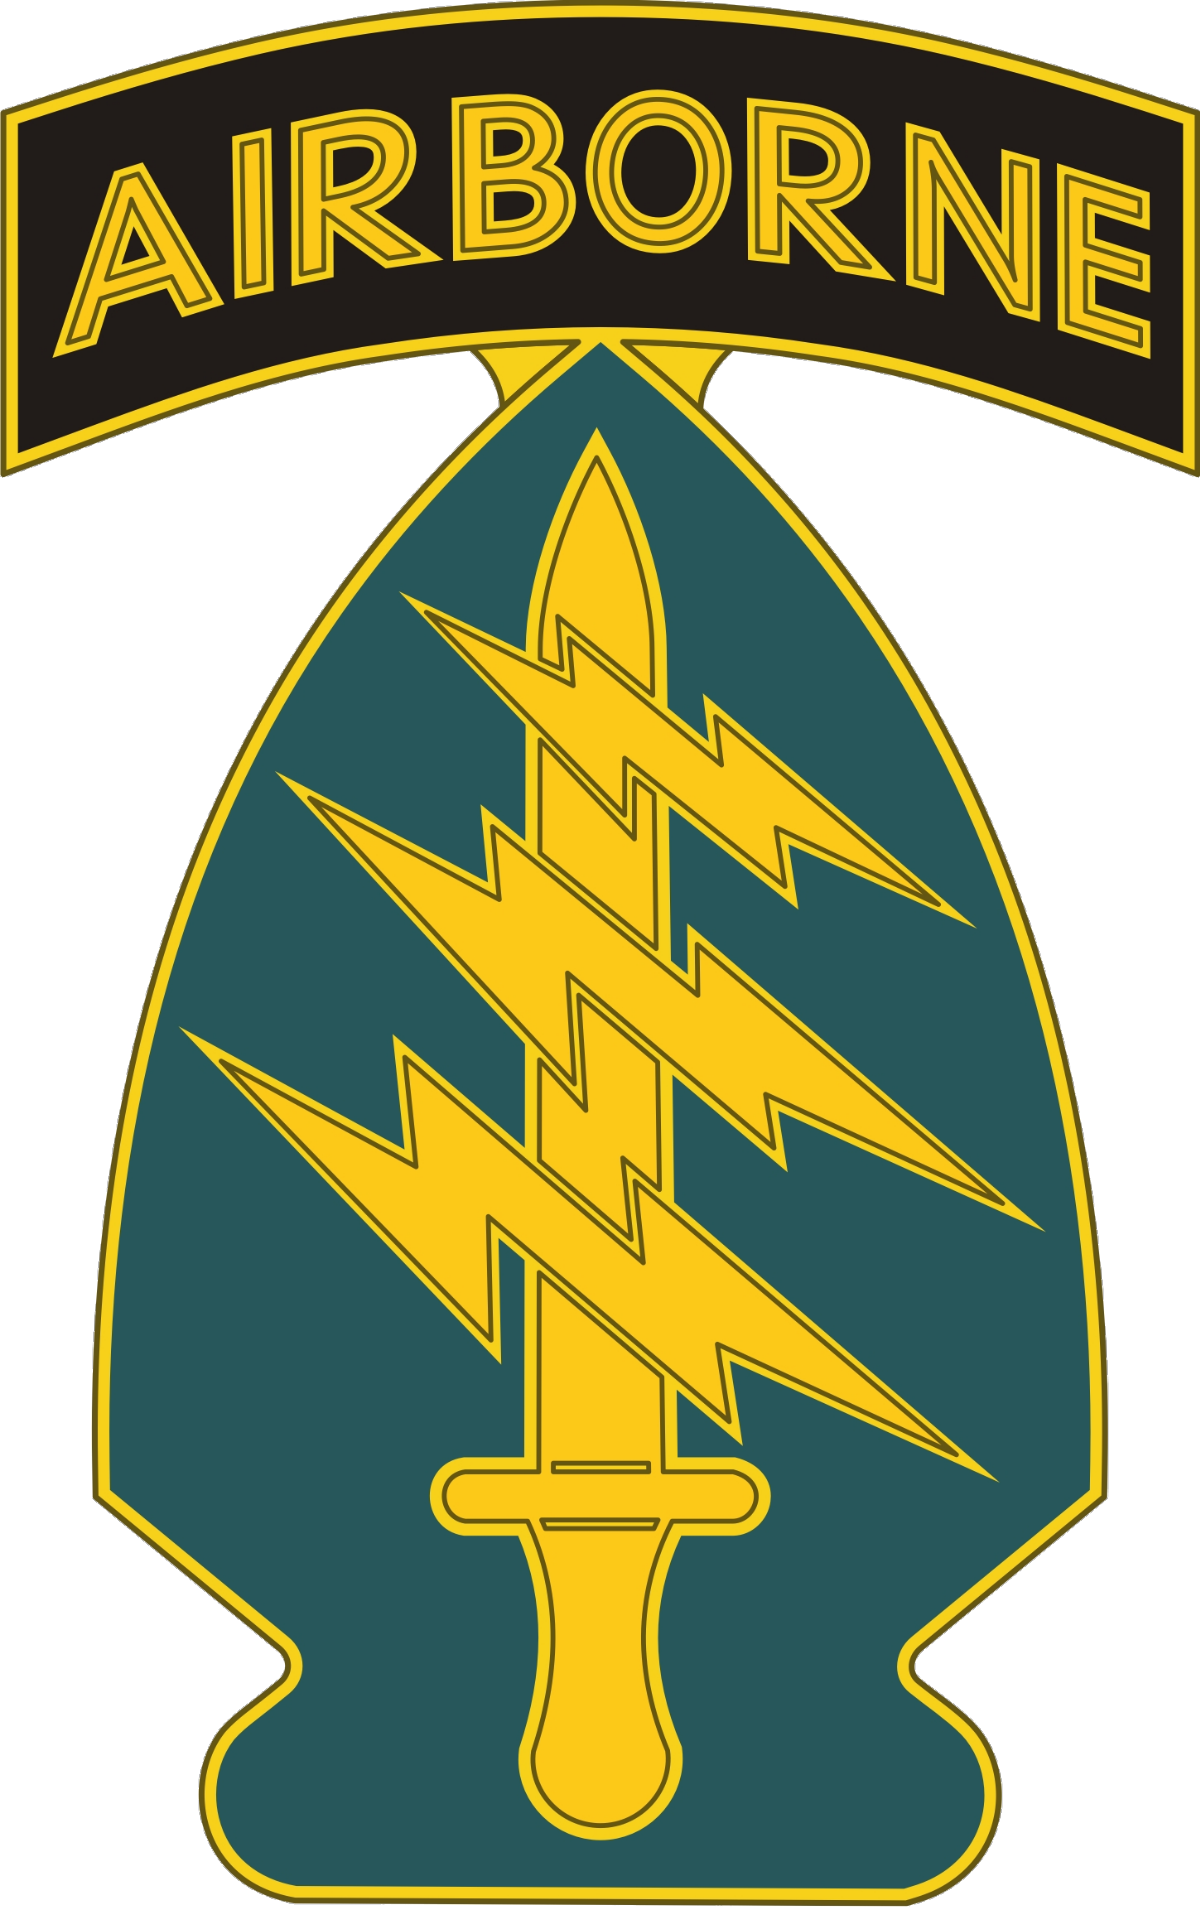 Warrior clipart persian soldier. Special forces united states